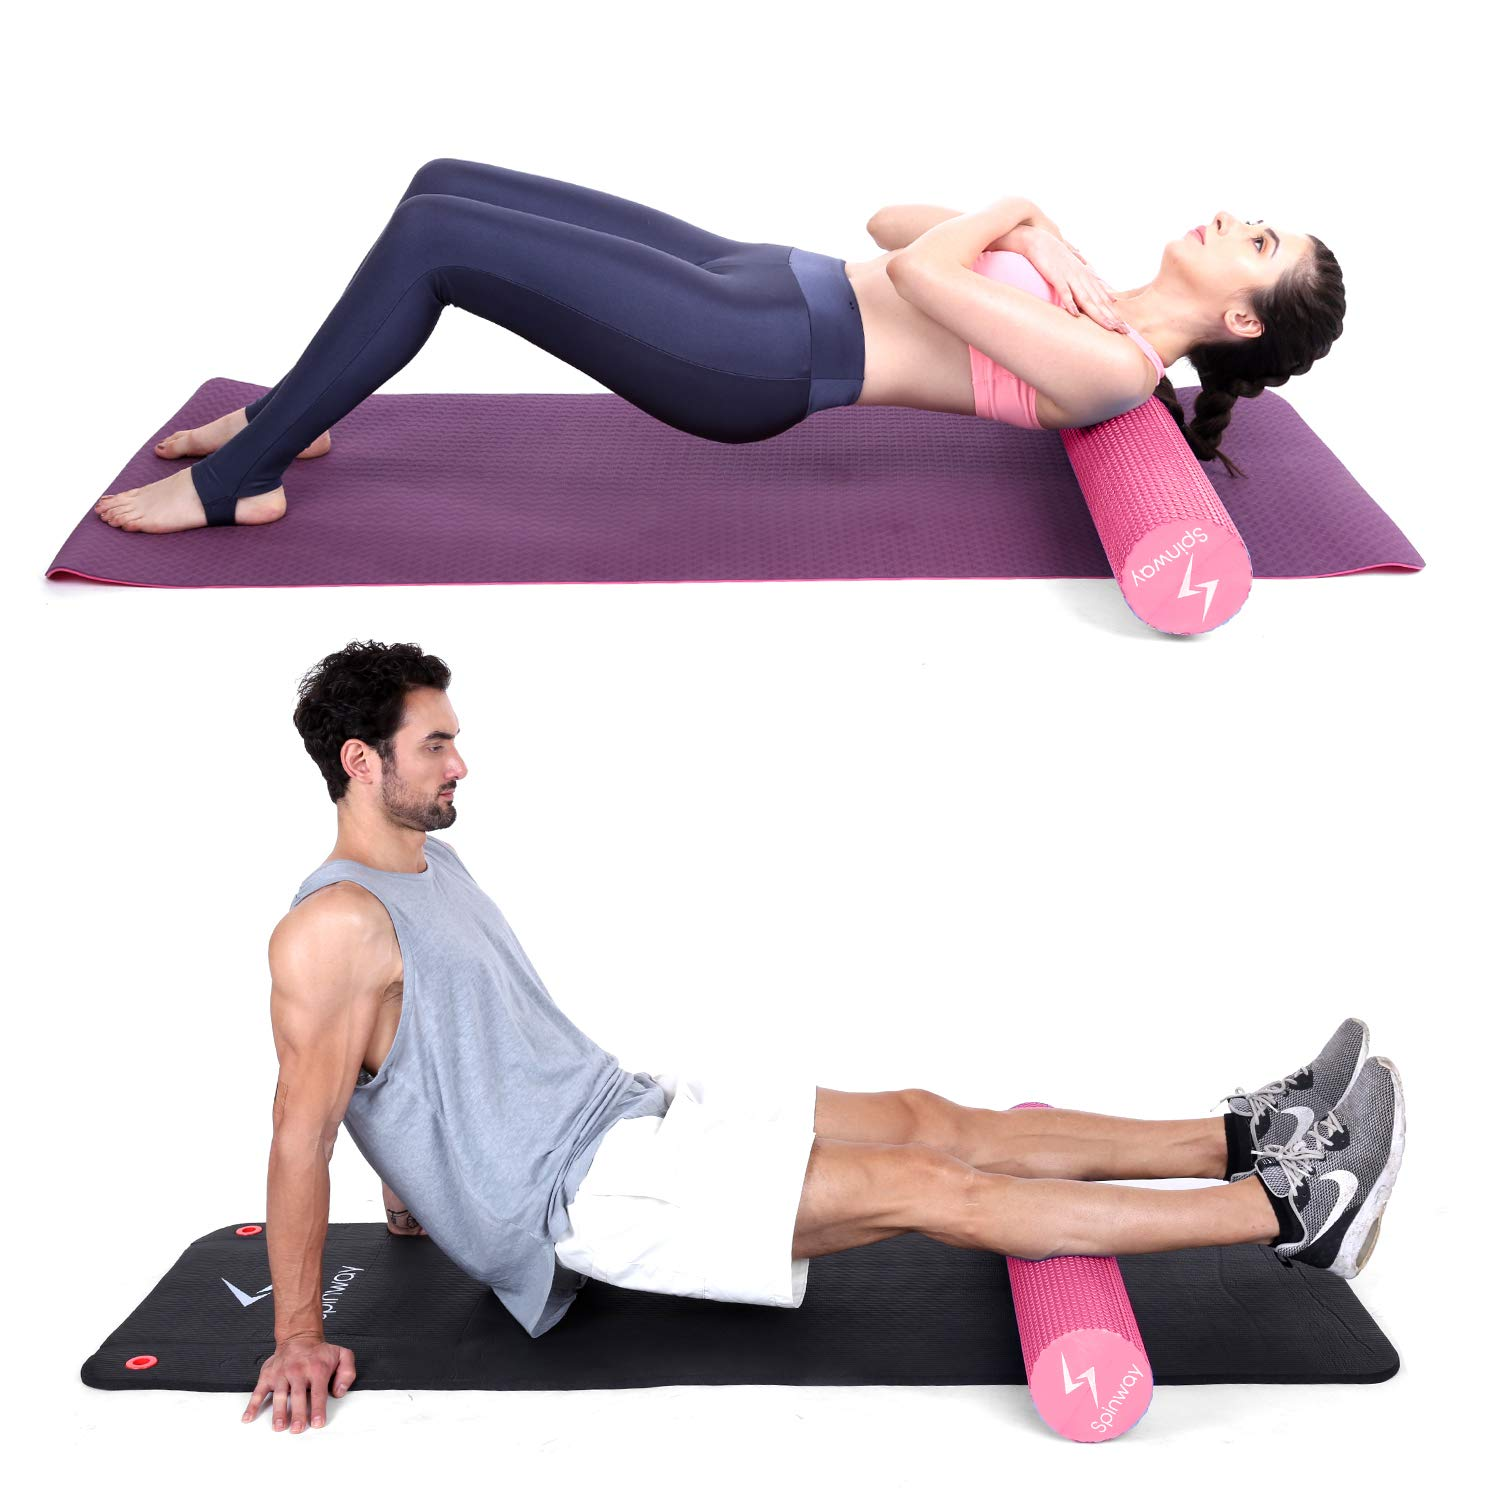 spinway Yoga Foam Roller Speckled Foam Rollers for Muscles Extra Firm High Density for Physical Therapy Exercise Deep Tissue Muscle Massage (Pink) by spinway (Image #5)